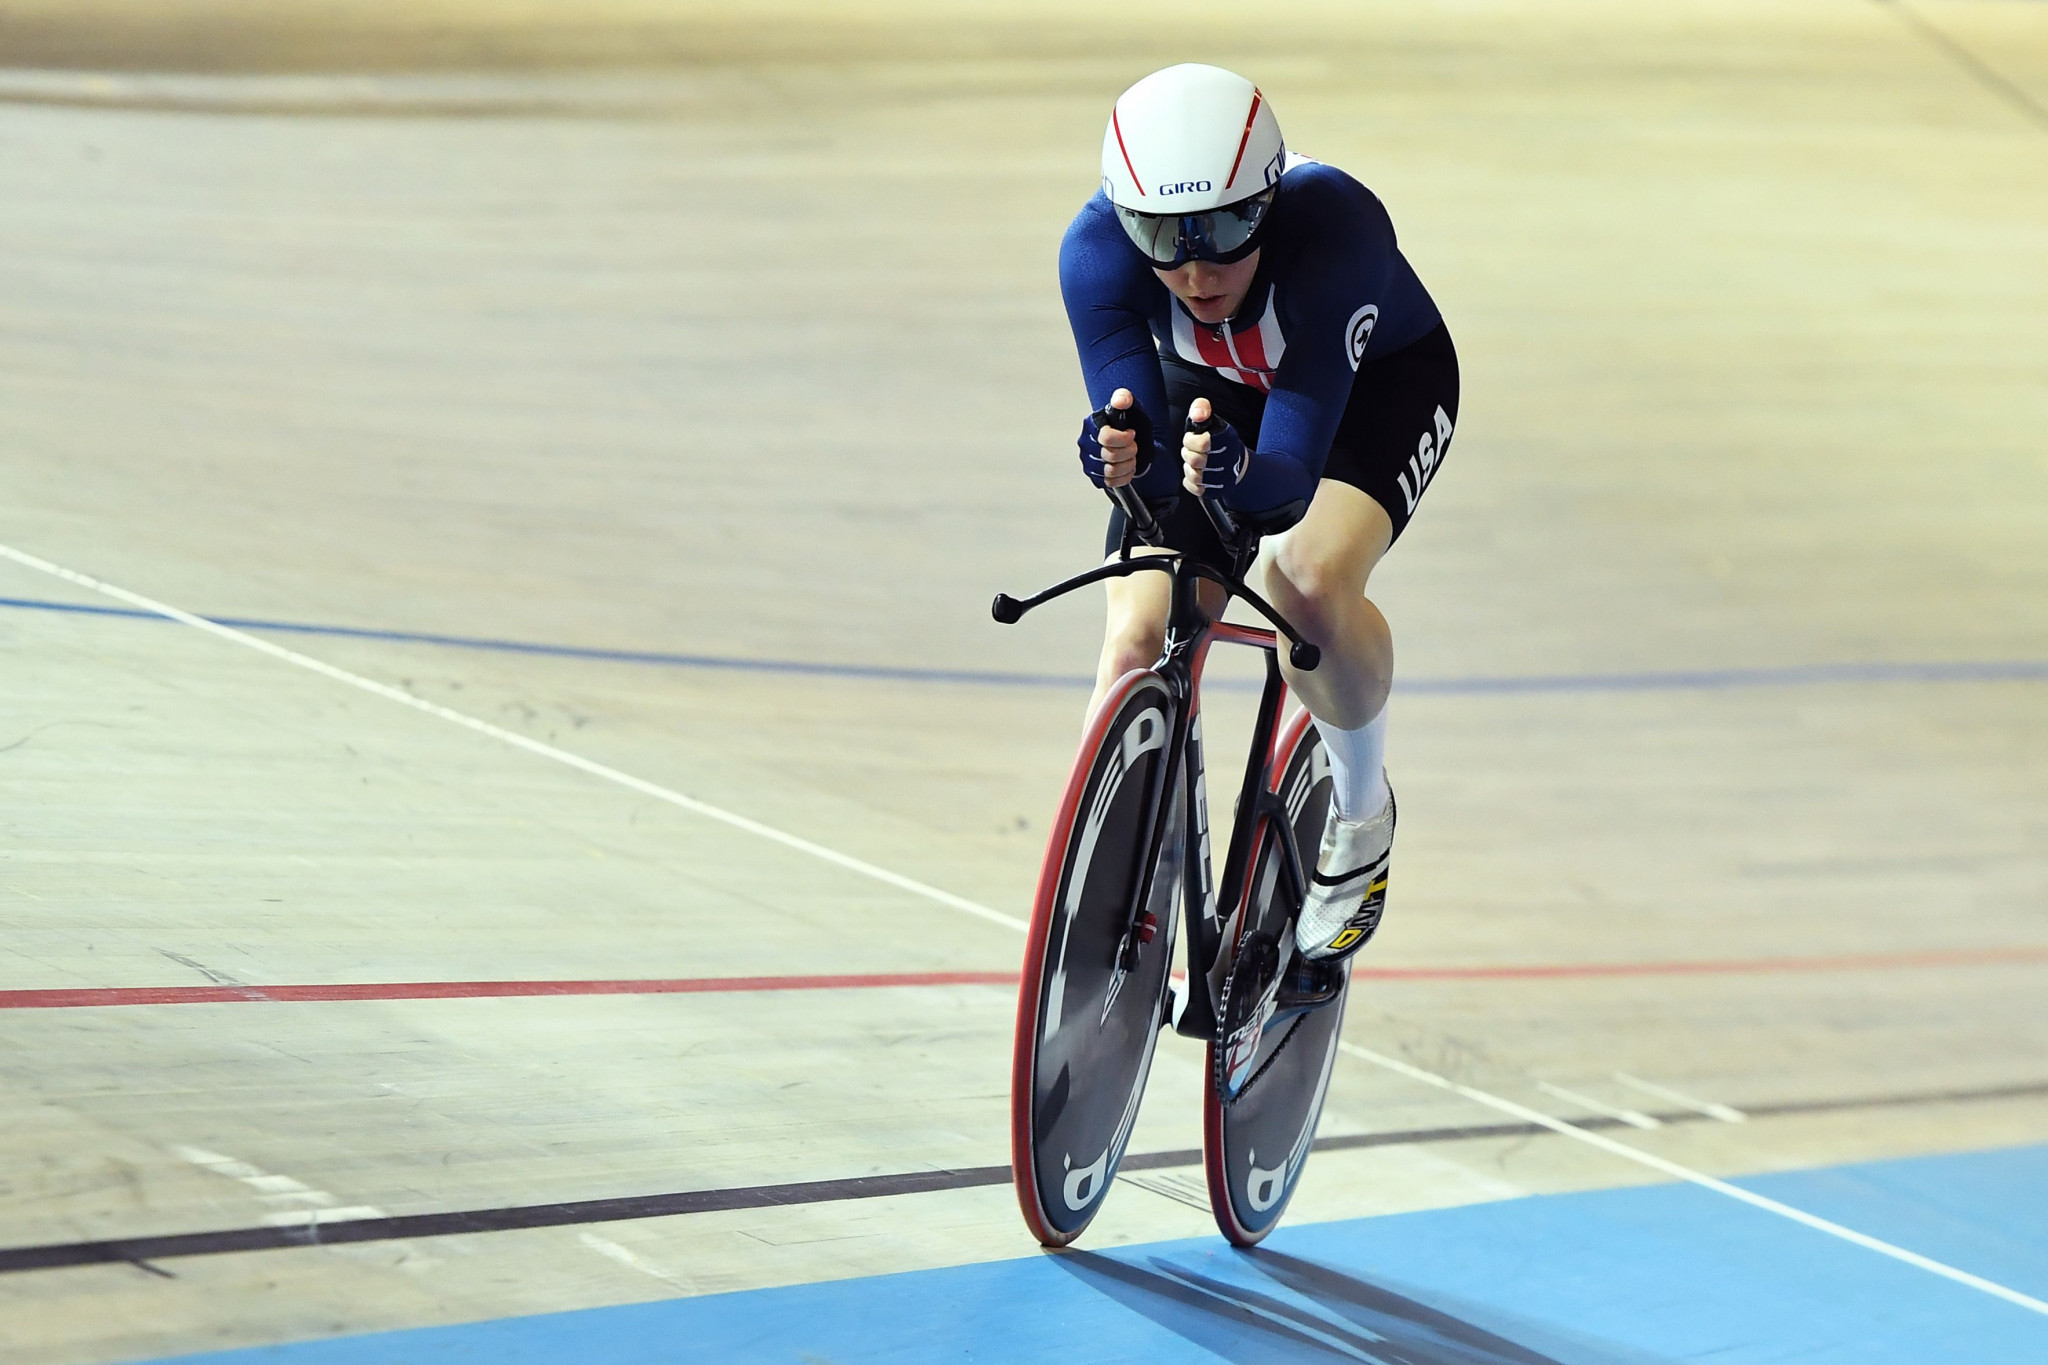 Kelly Catlin won three world titles and an Olympic silver medal ©Getty Images